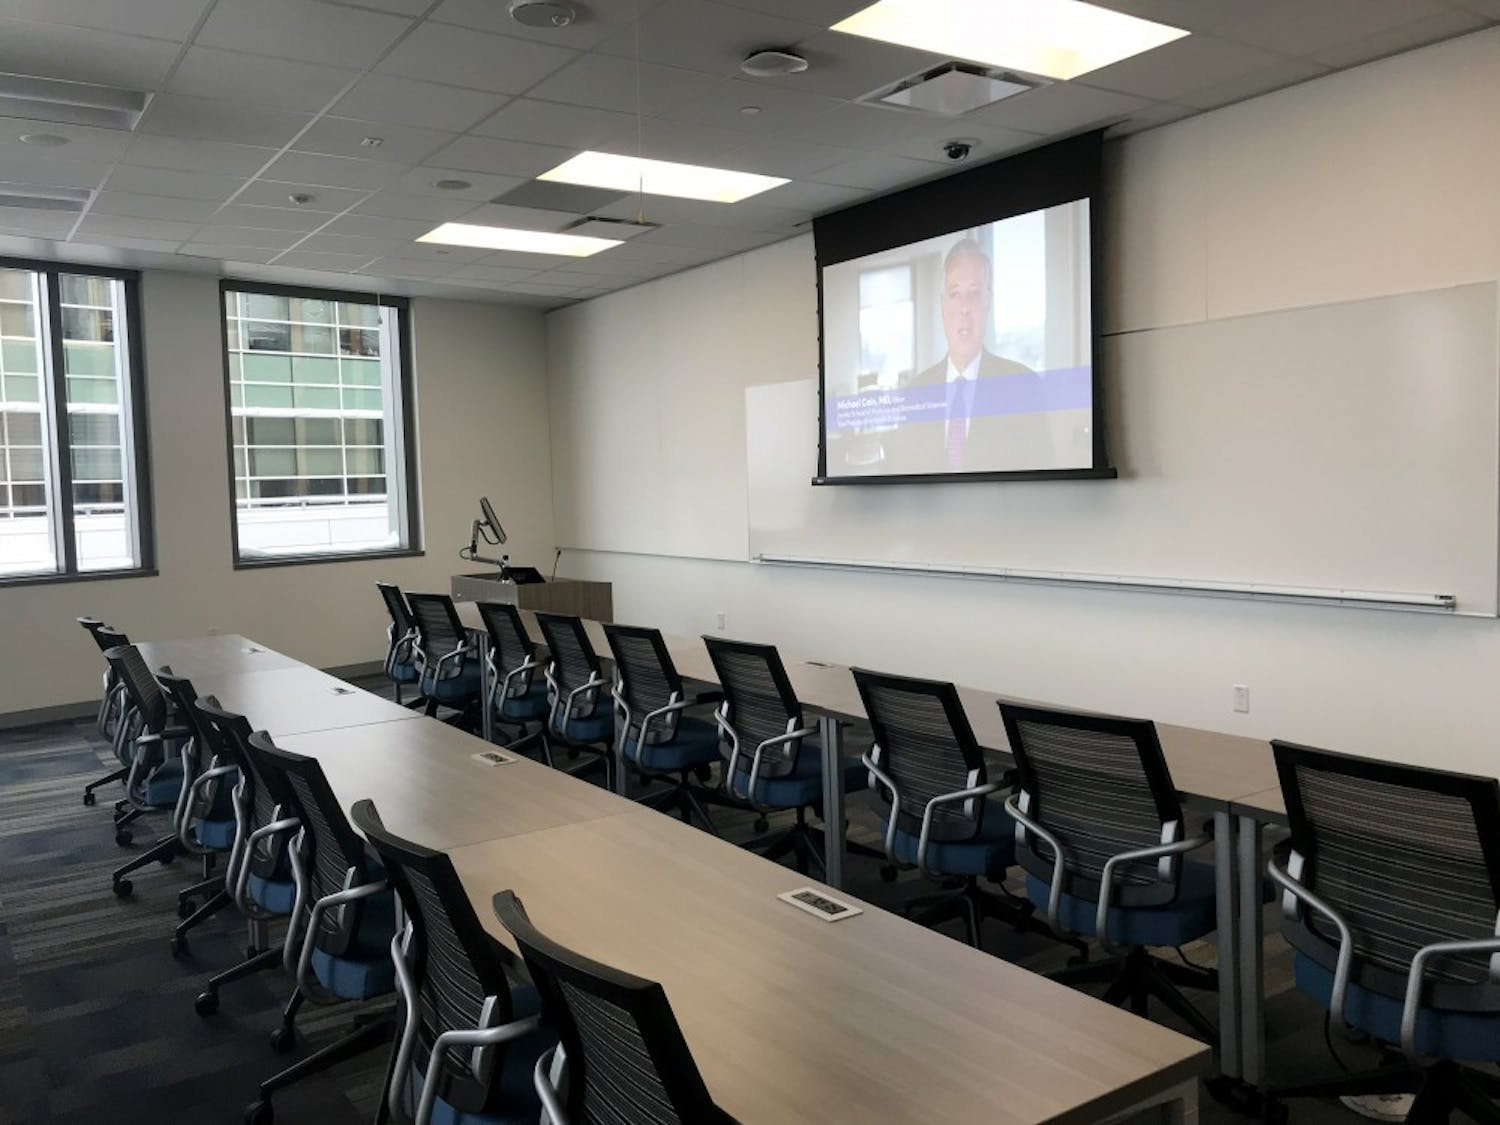 Classrooms in the new Jacobs School of Medicine and Biomedical Sciences are designed to facilitate collaborative, discussion based classes as opposed to traditional lectures, according to second year medical student Laura Reed. Students will start classes in the new building on Jan. 8.